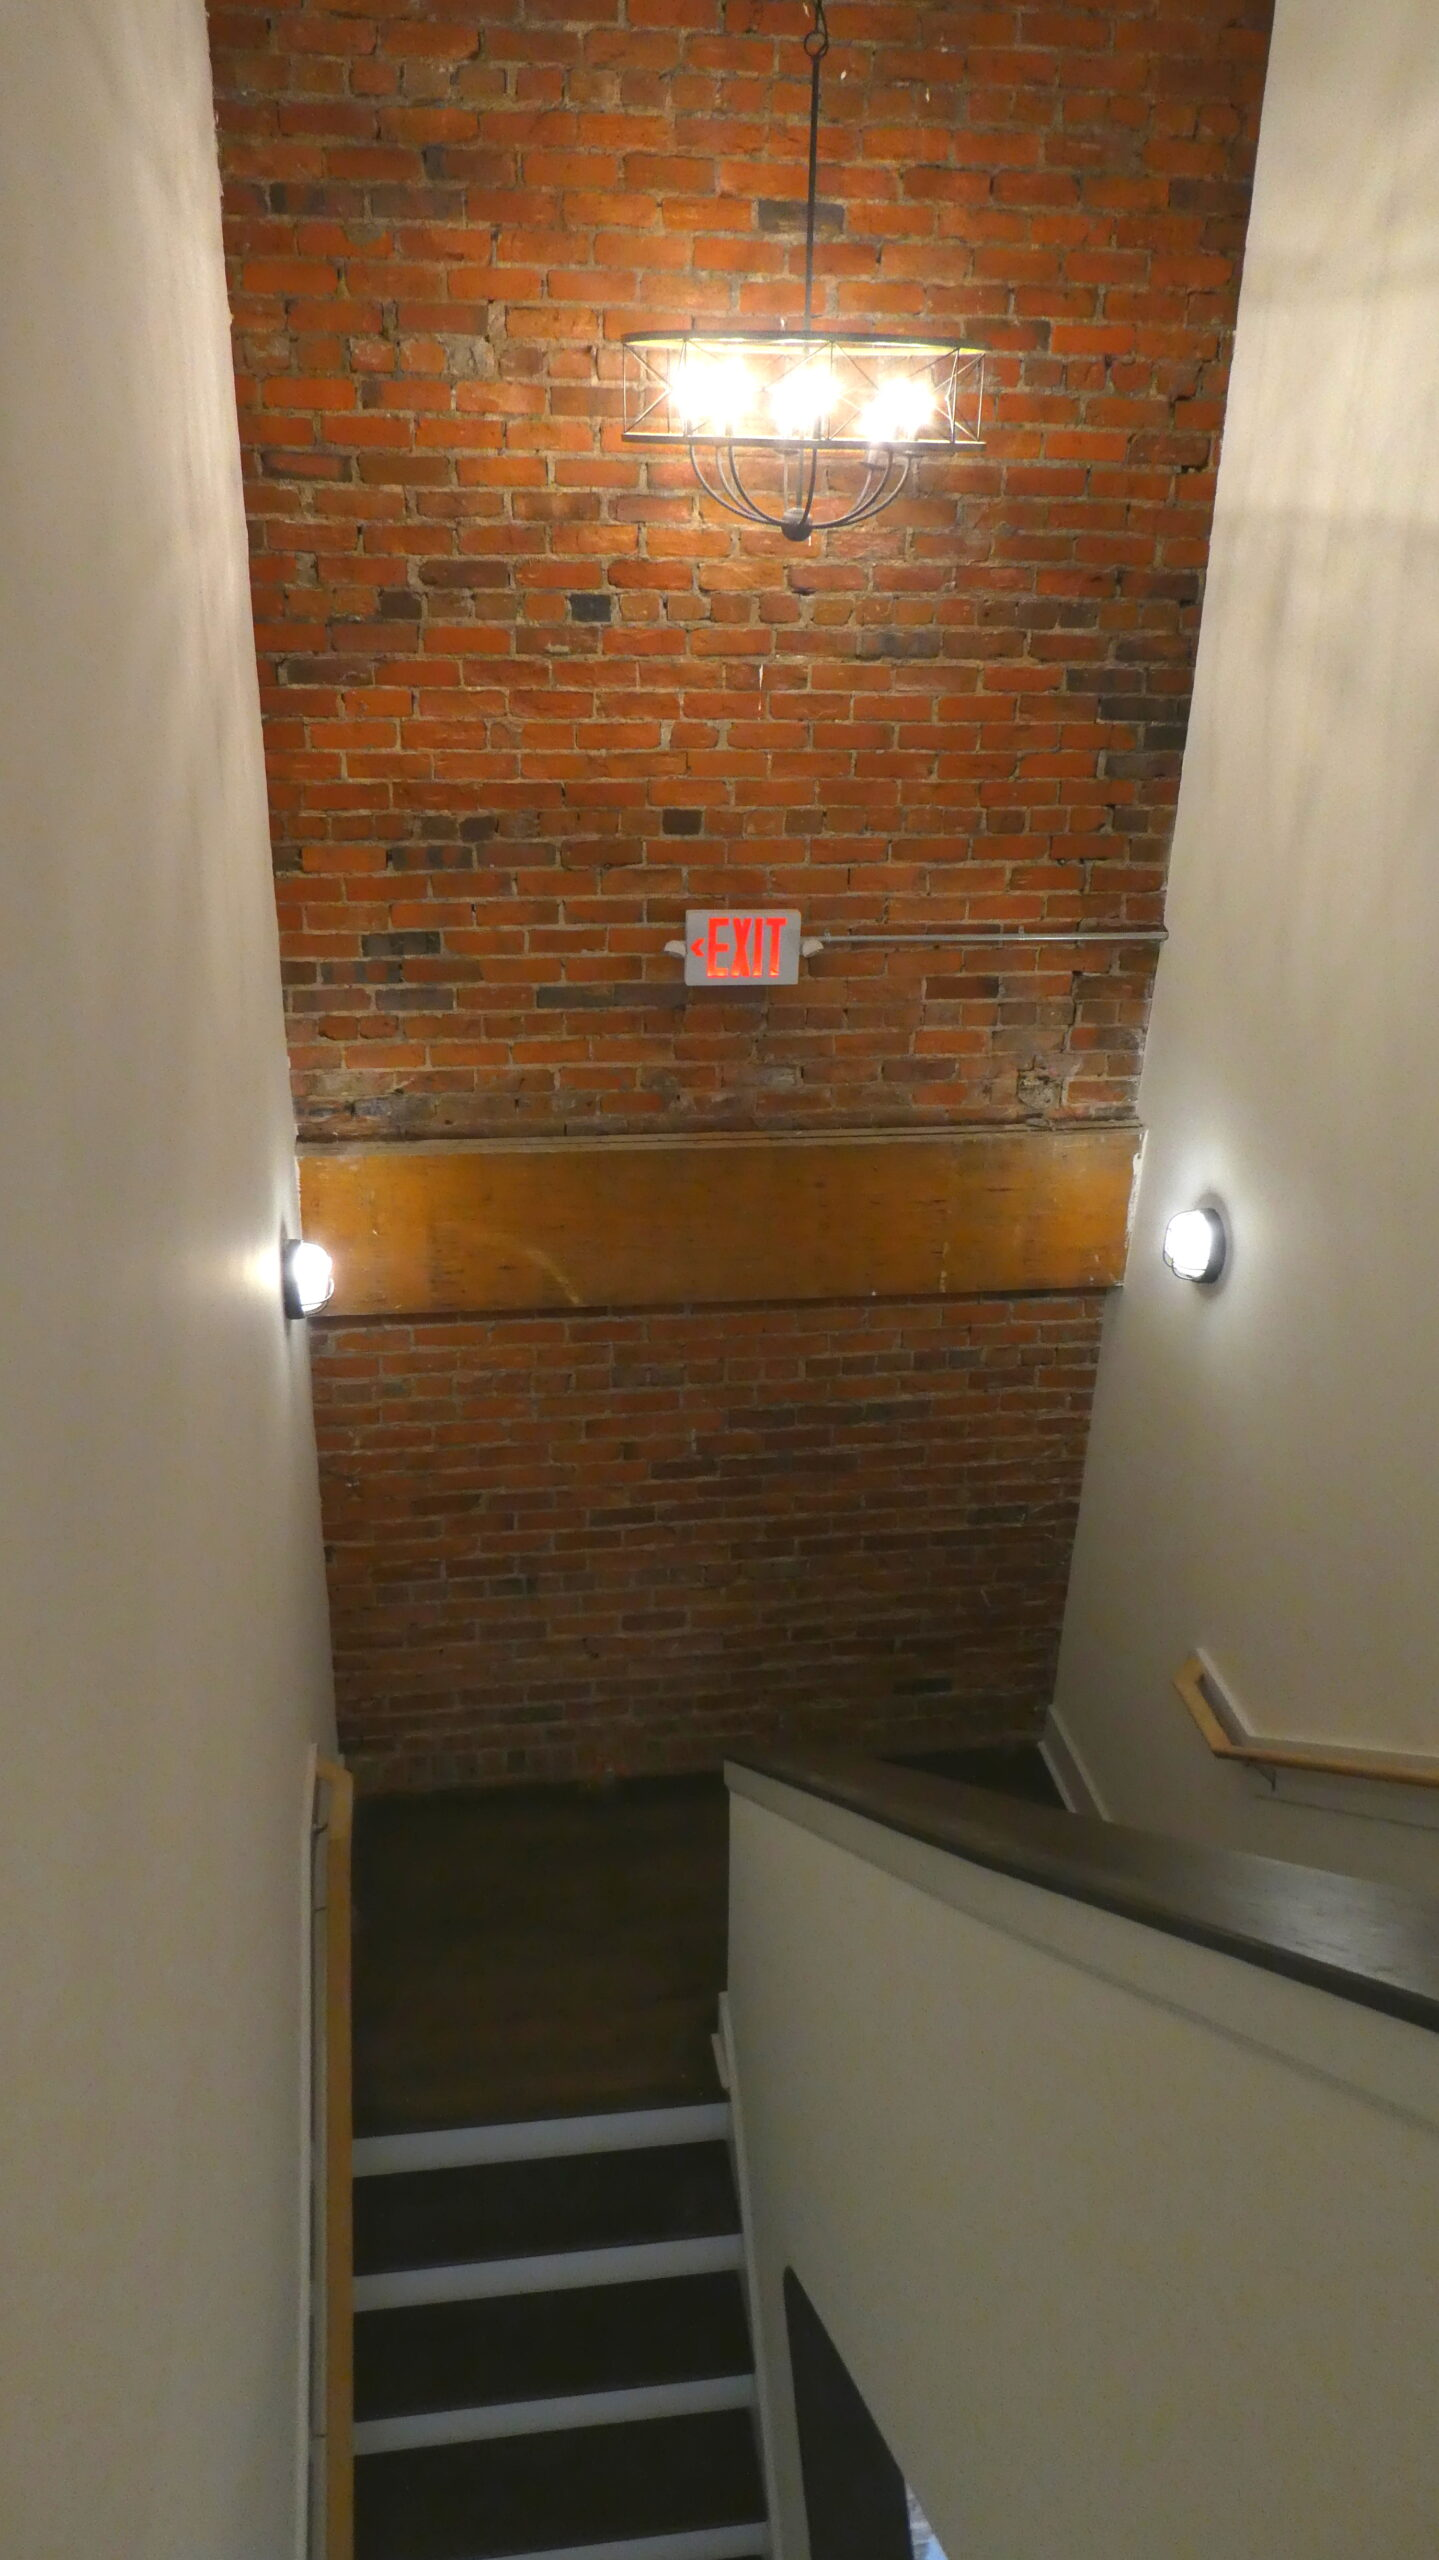 Photo of the stairwell at the Indie Ice Lofts